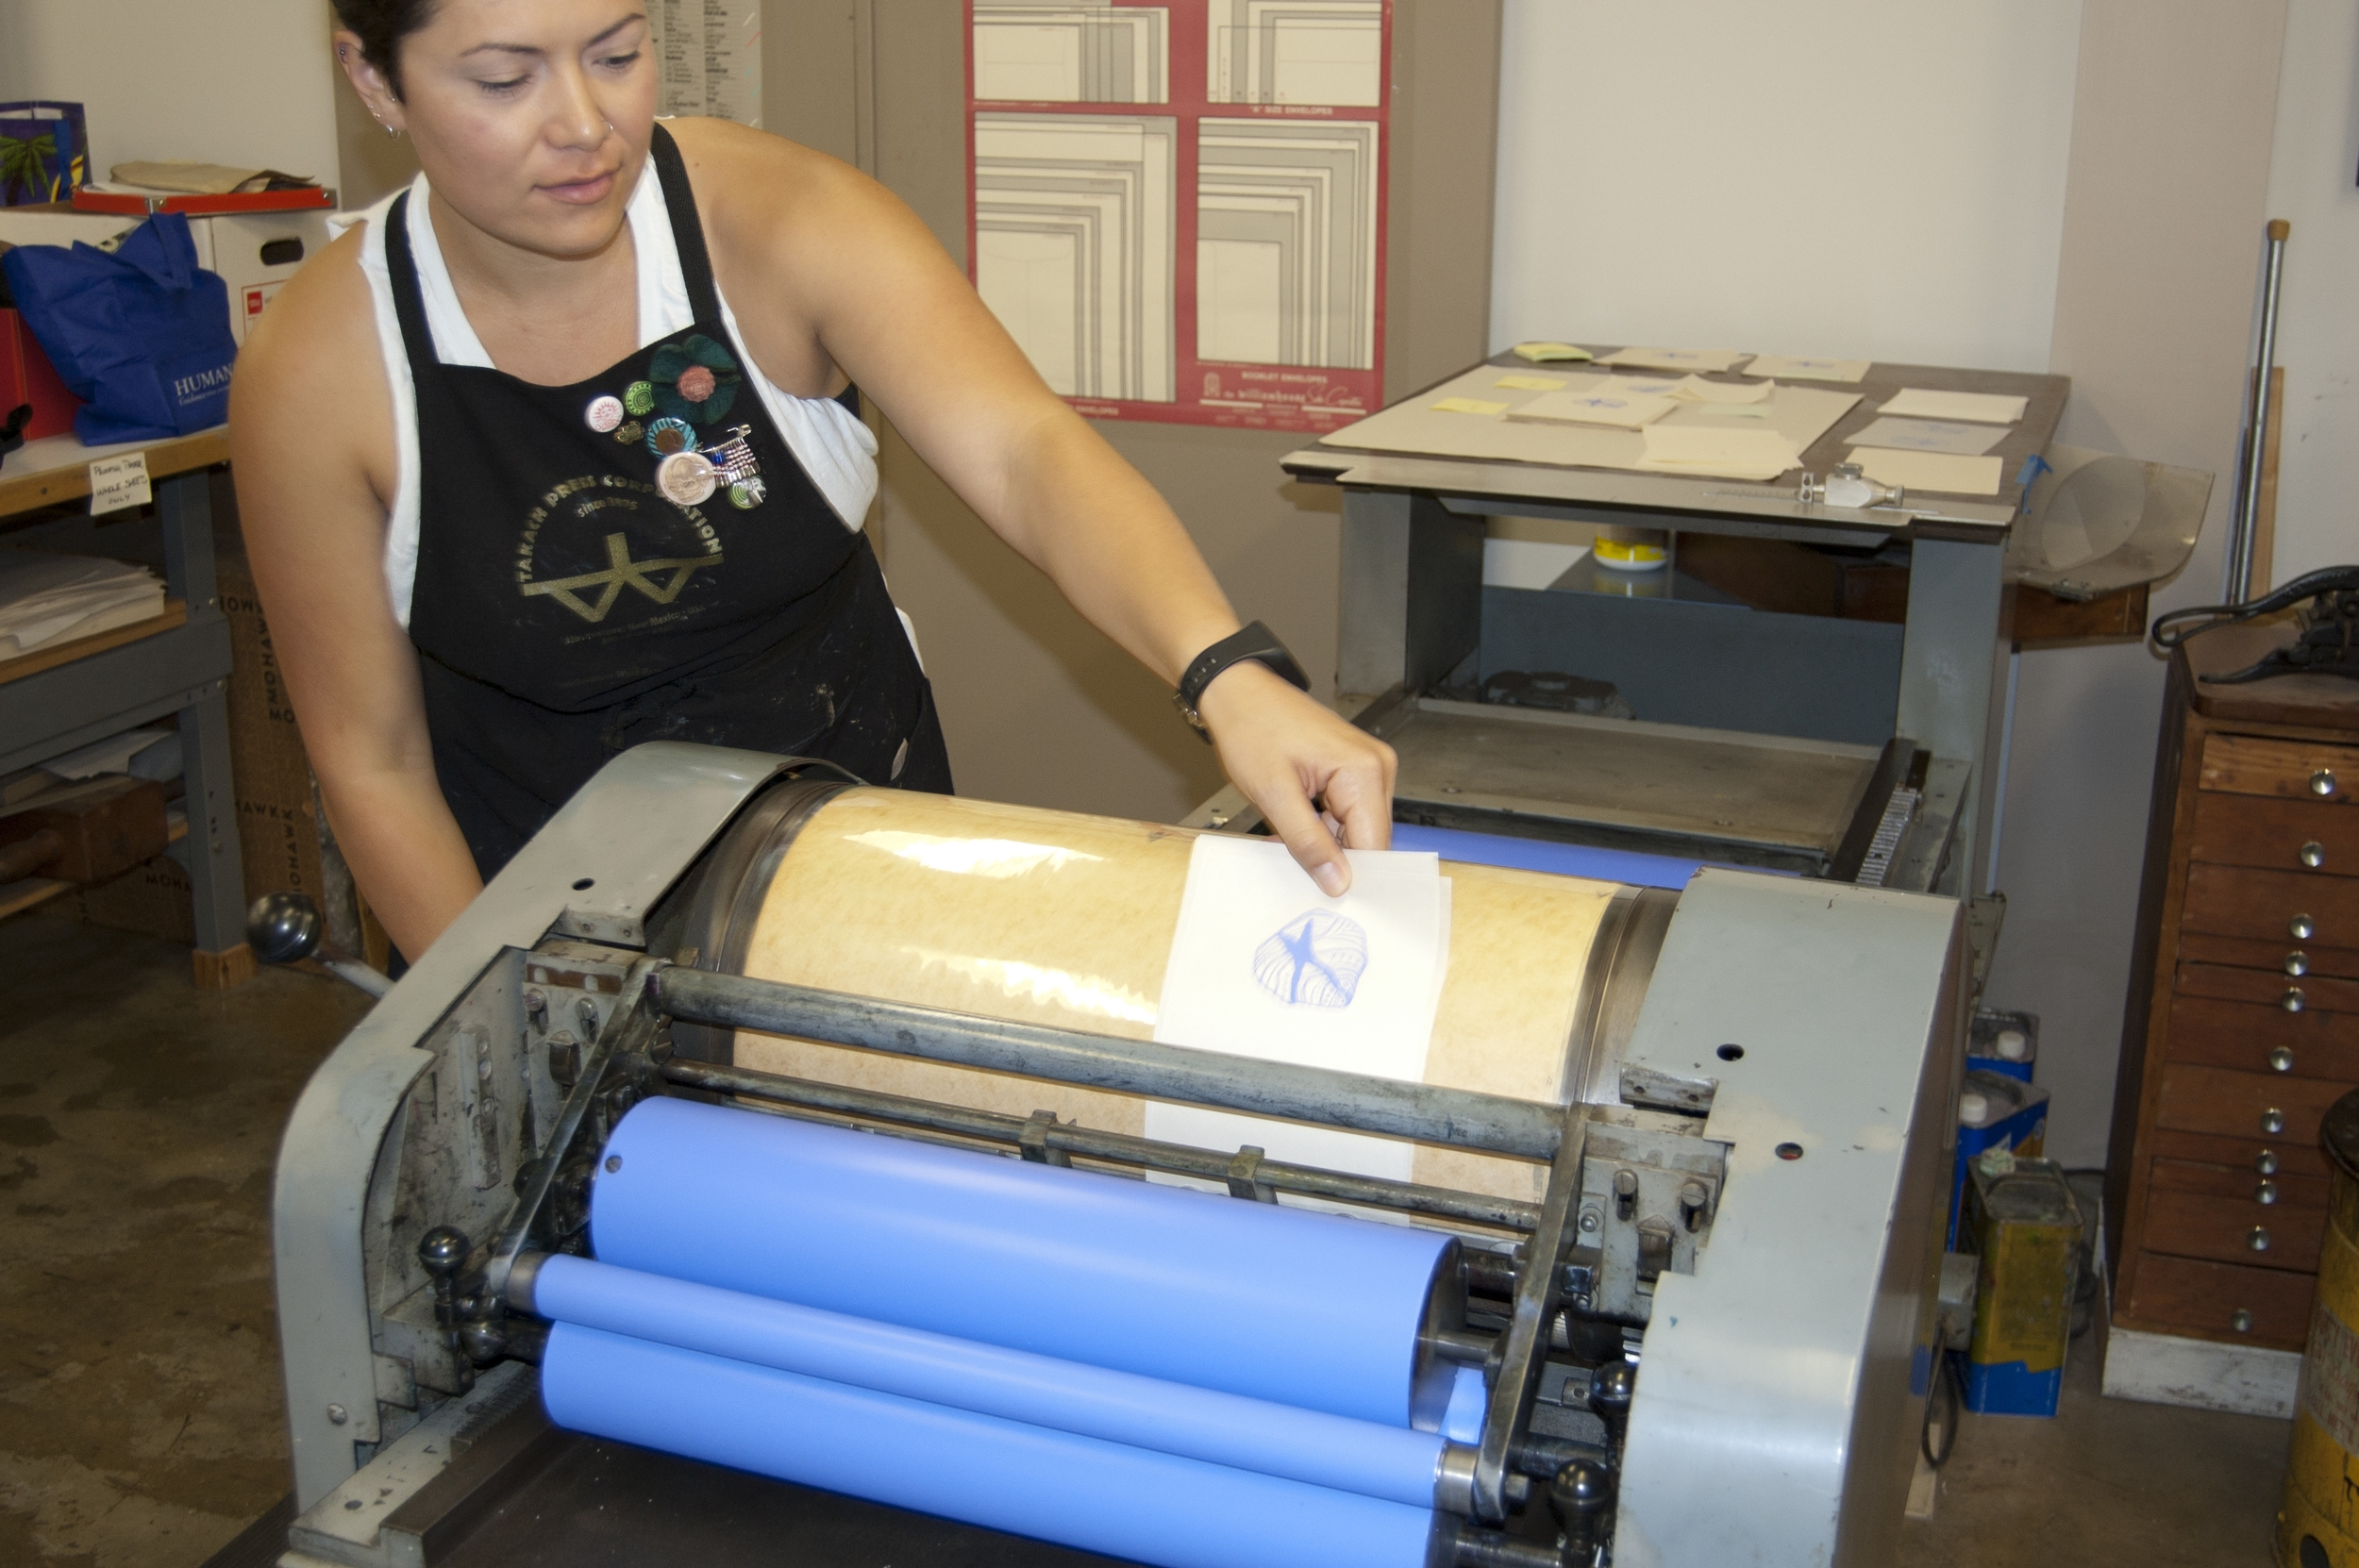 Printing one of the images for our book!